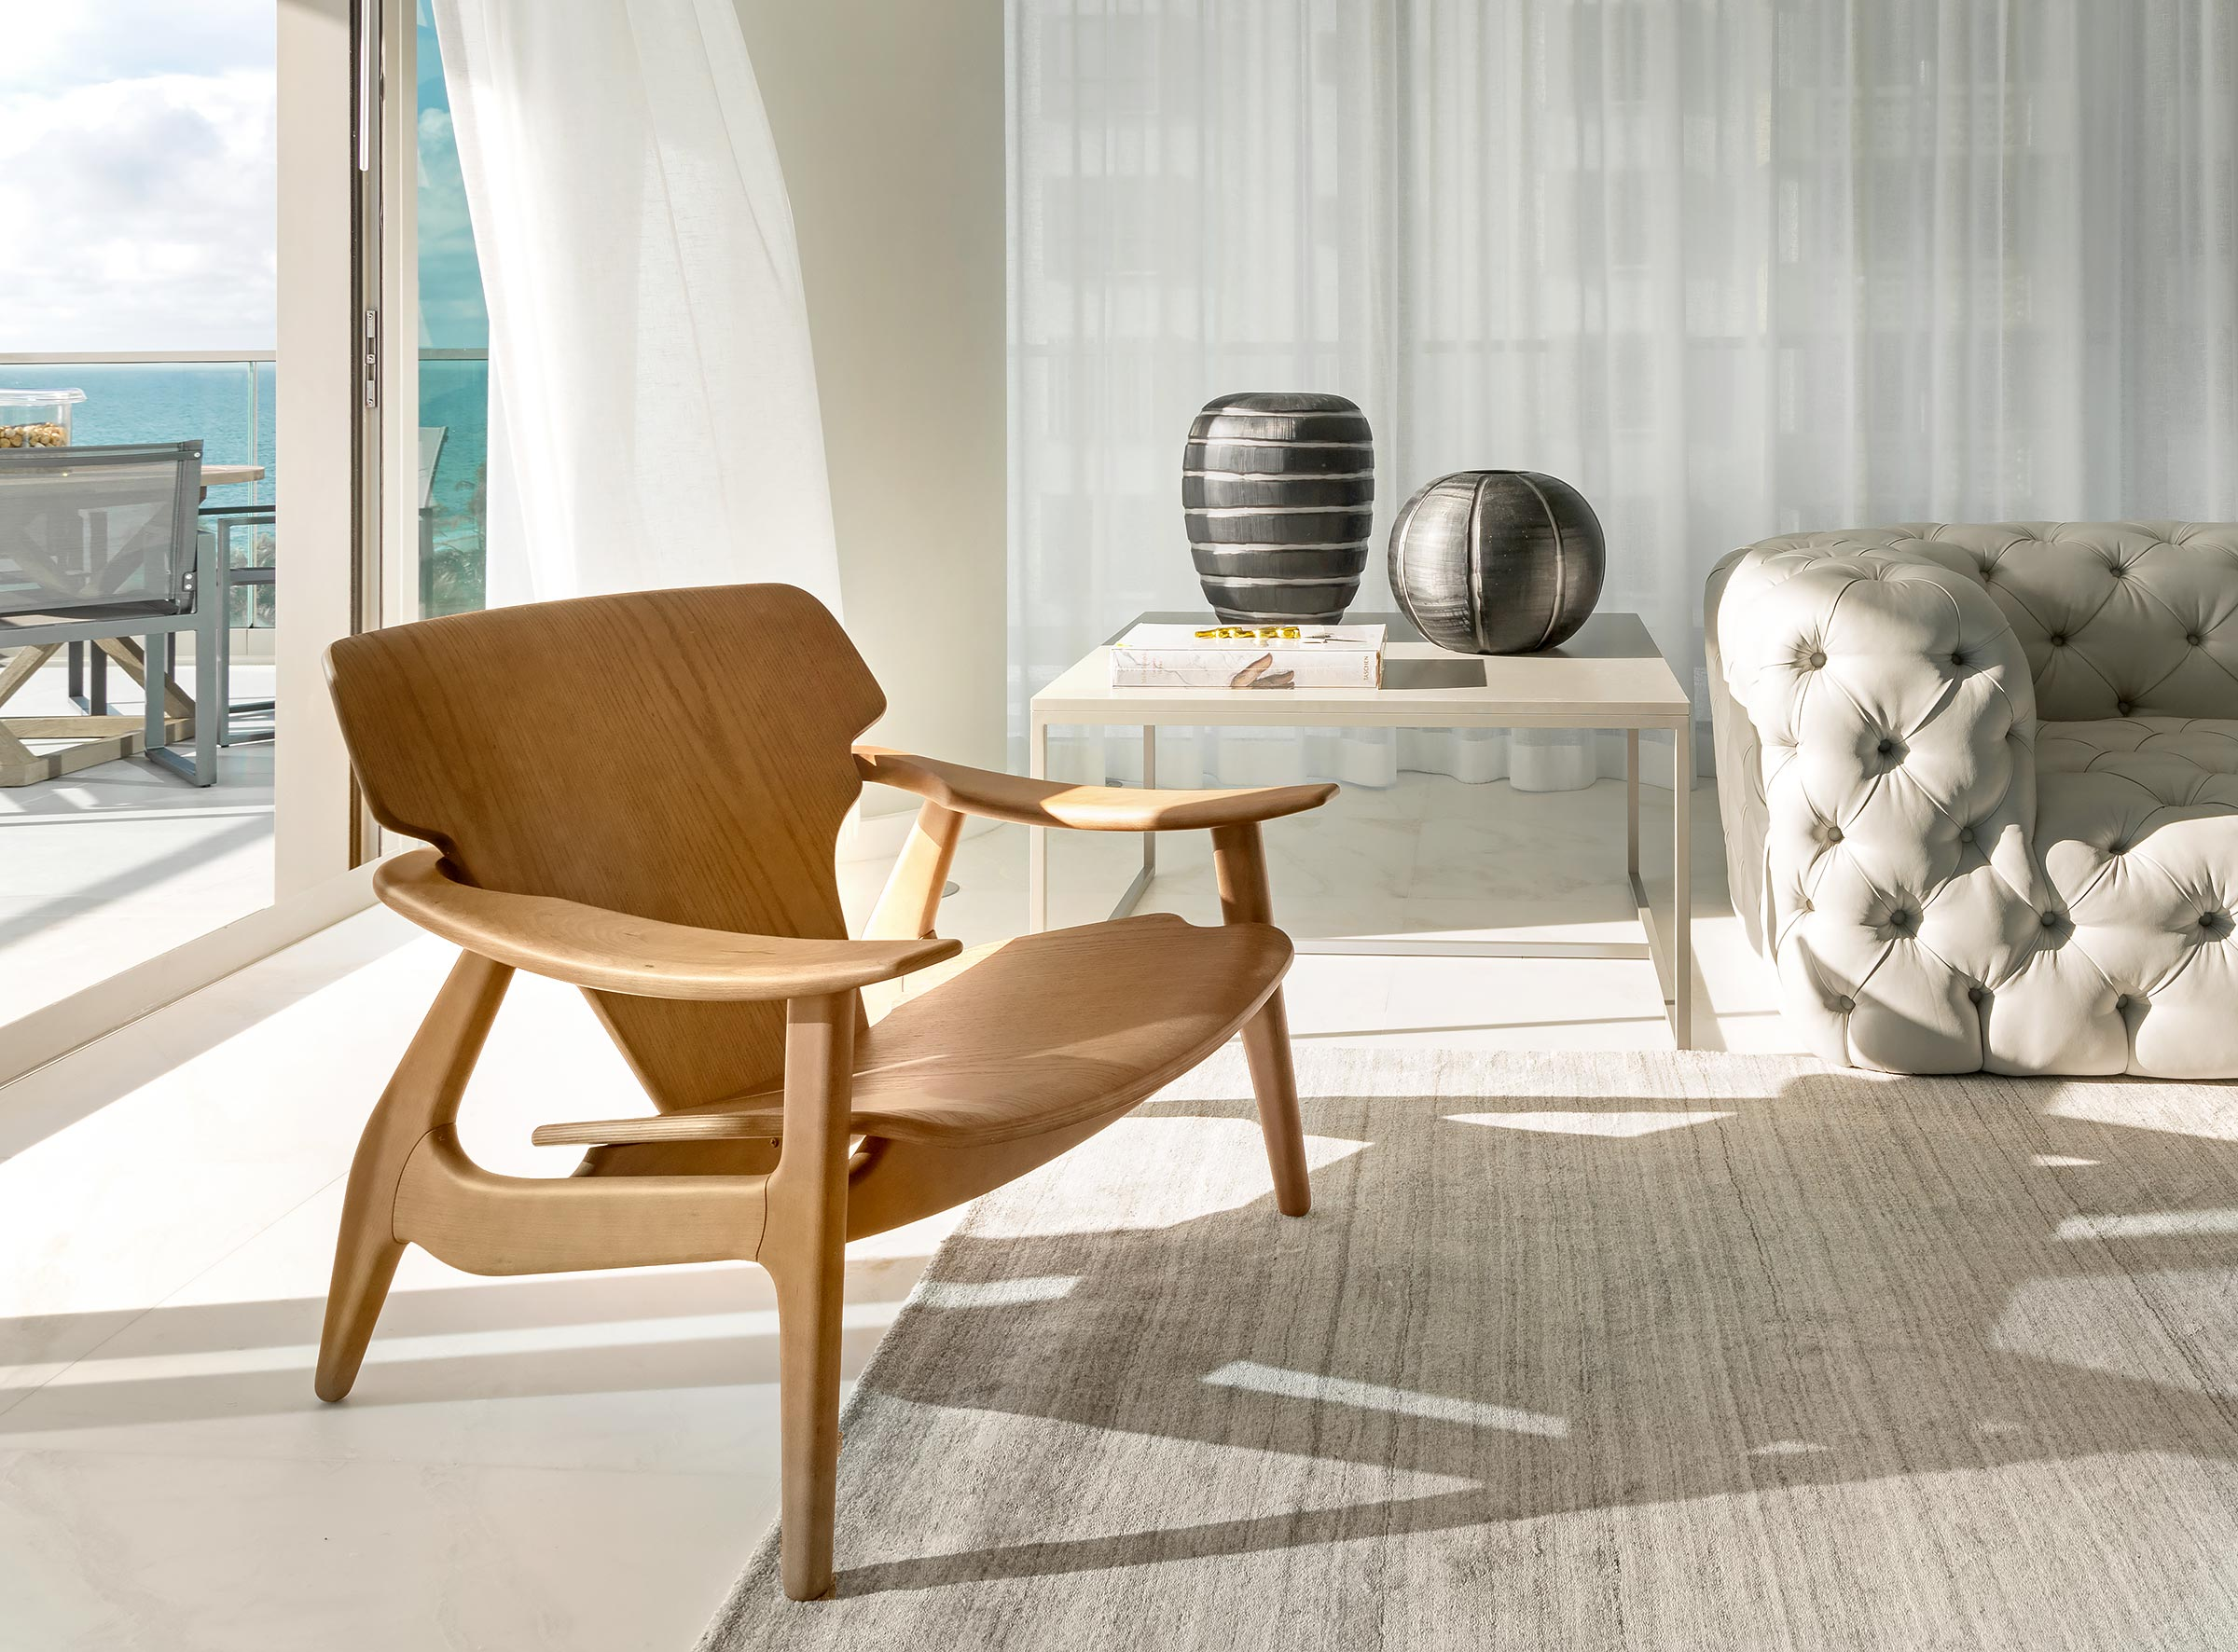 Bal-Harbour-Miami-Modern-Design-Wooden-Chair